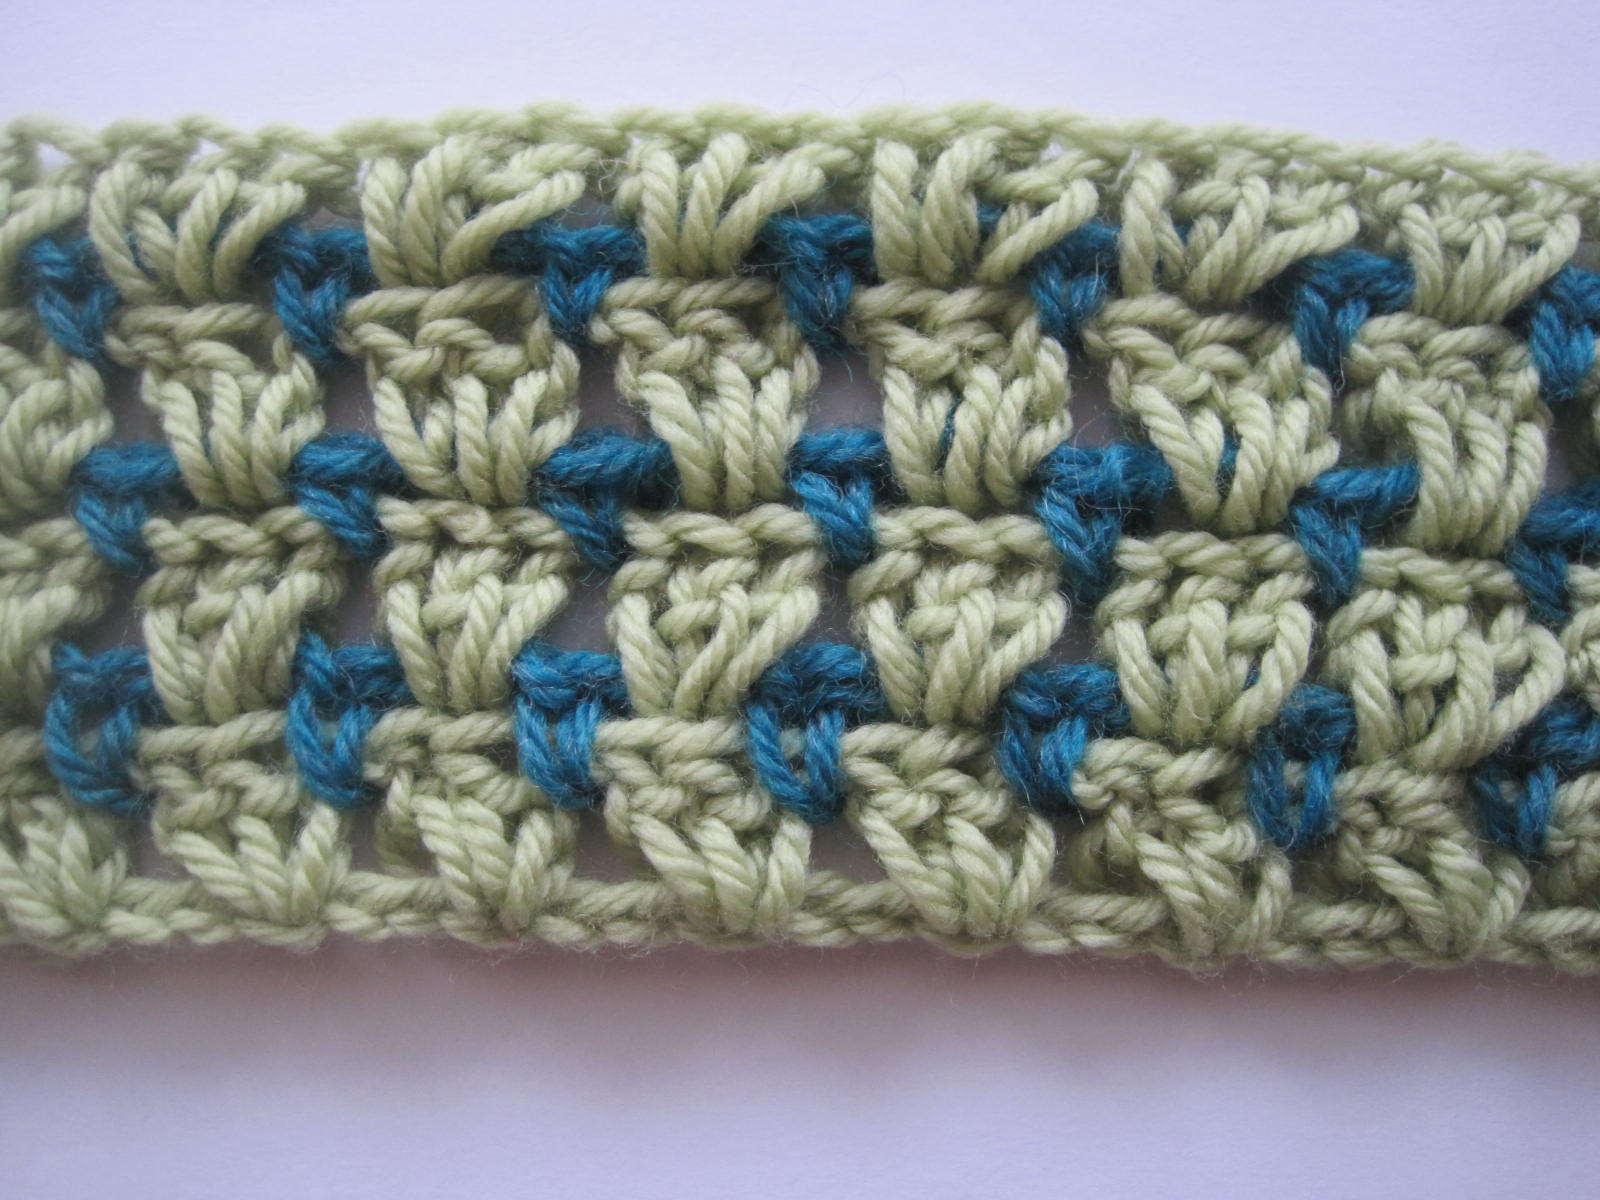 ... Crochet: Multi-Colored Stitches Part 2 - Crochet Patterns, Tutorials